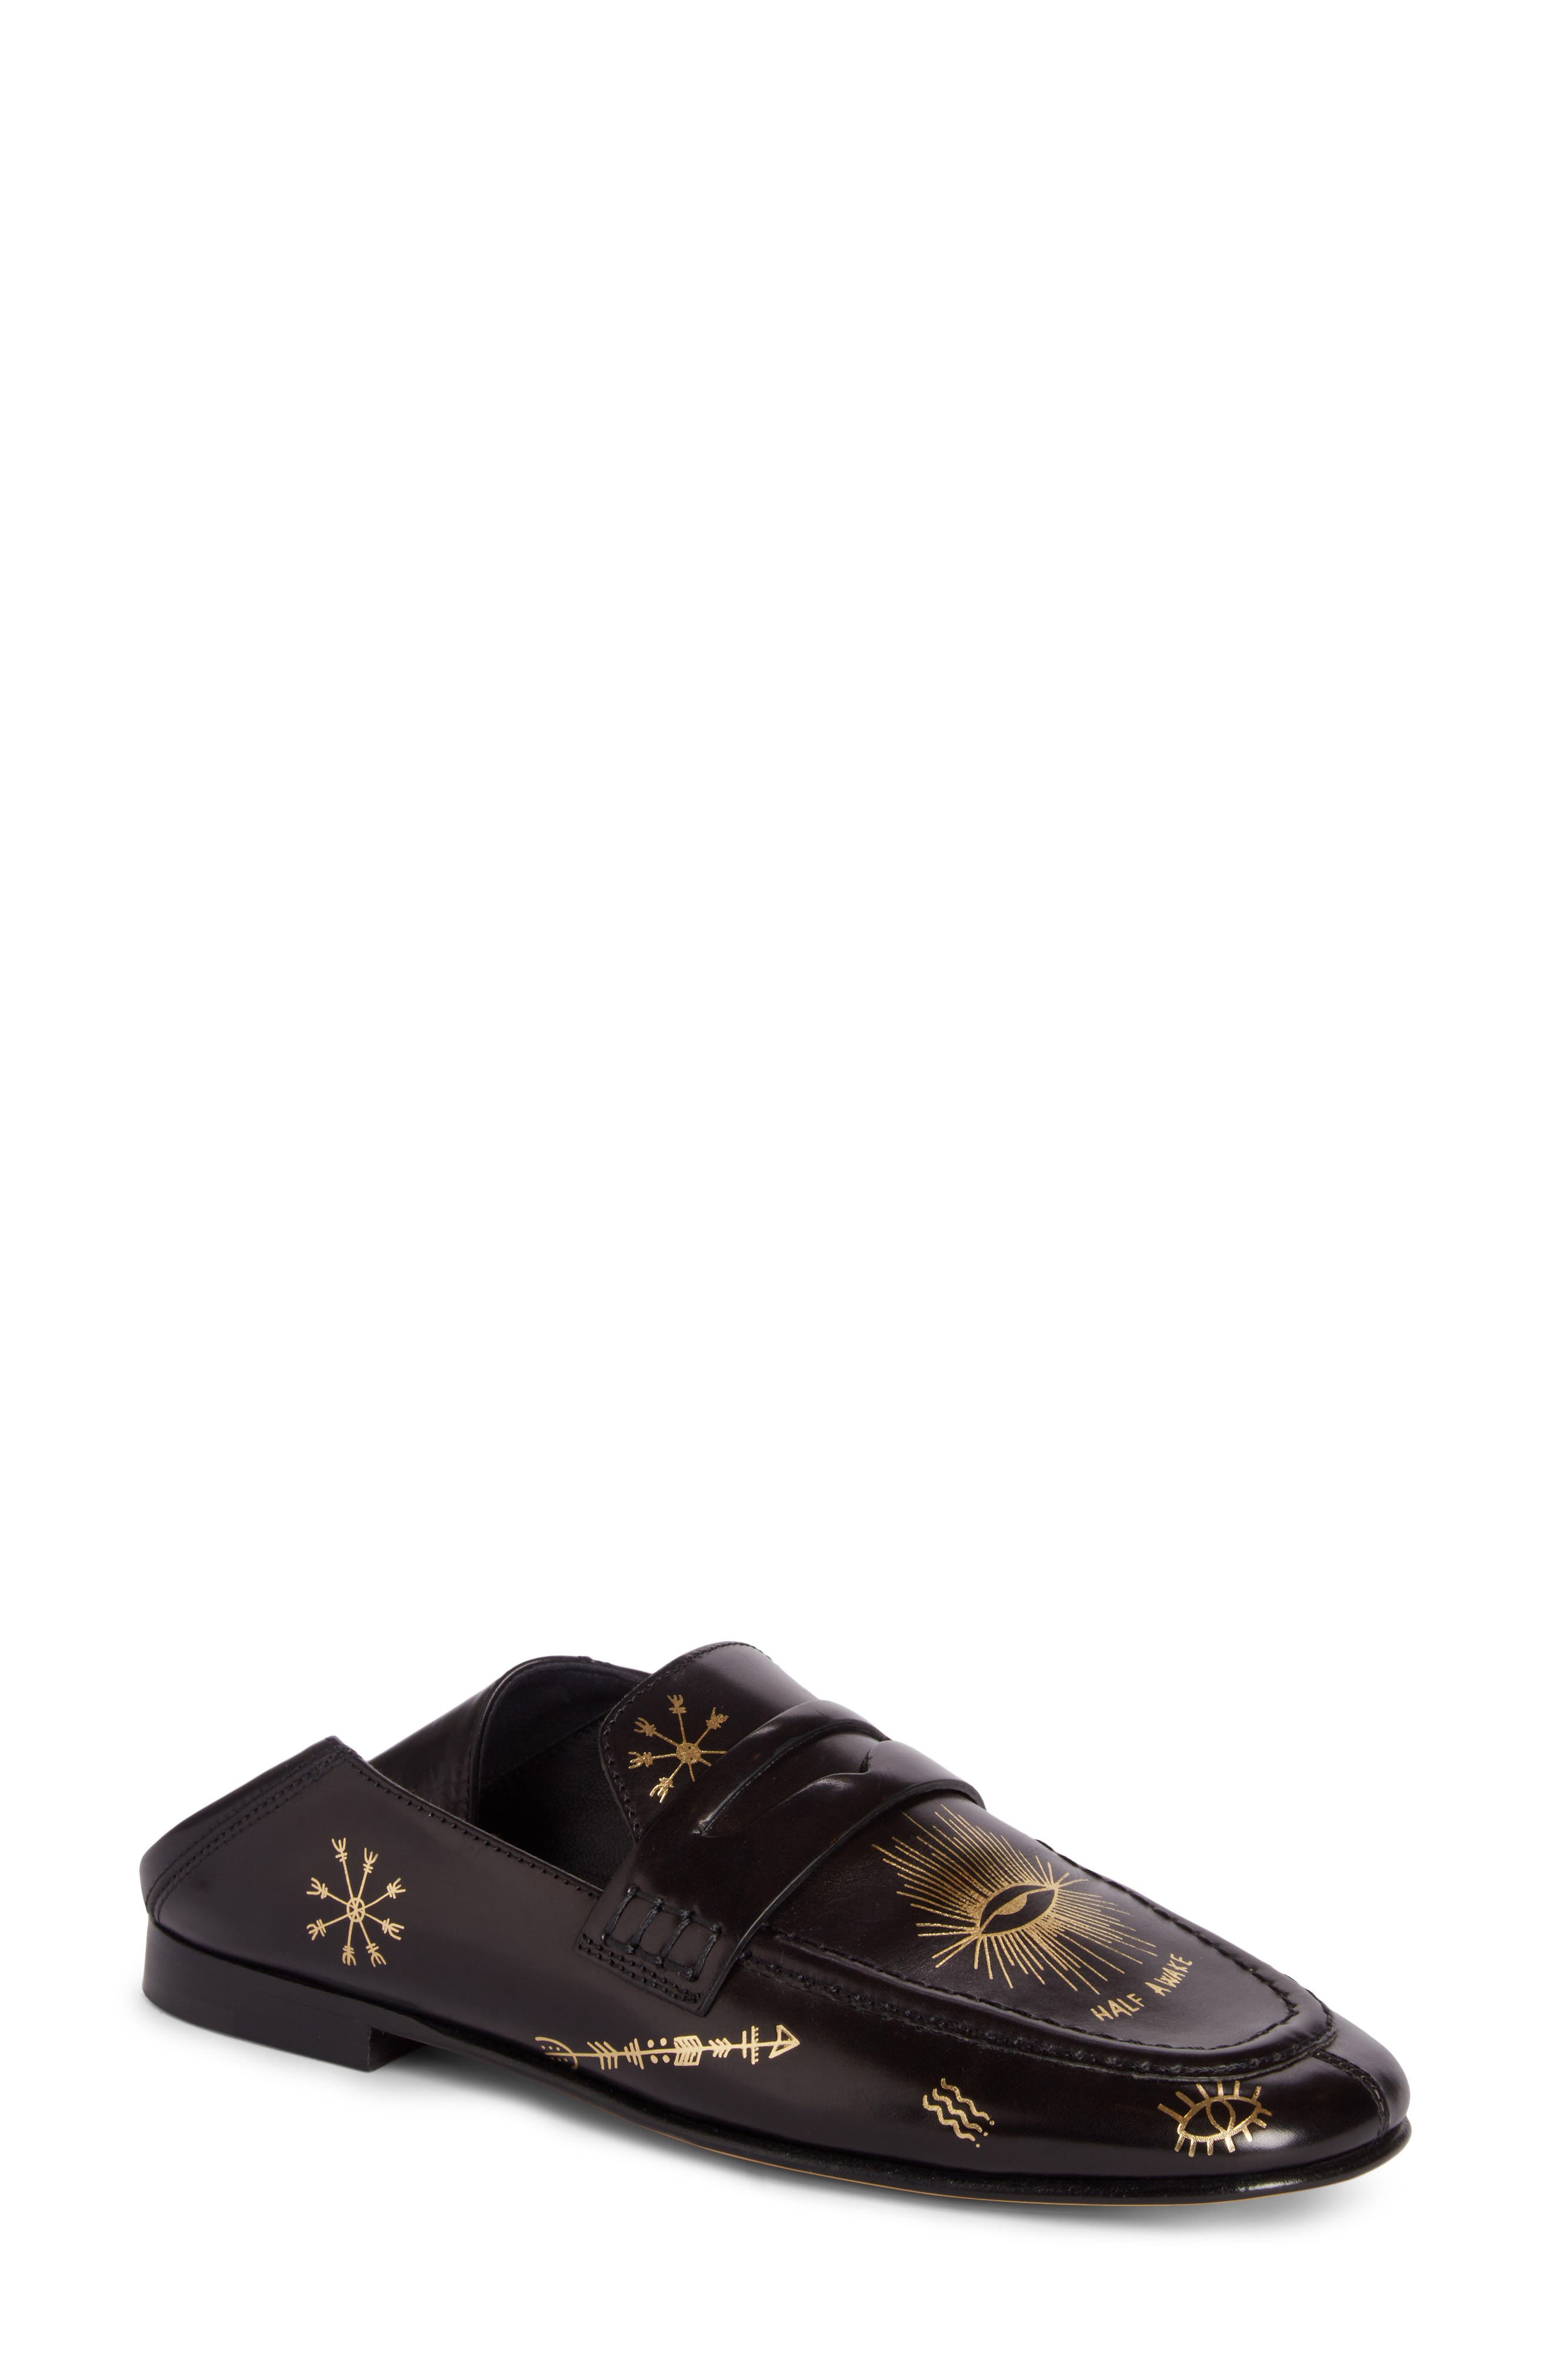 Fezzy Print Convertible Loafer,                             Main thumbnail 1, color,                             Metallic Black